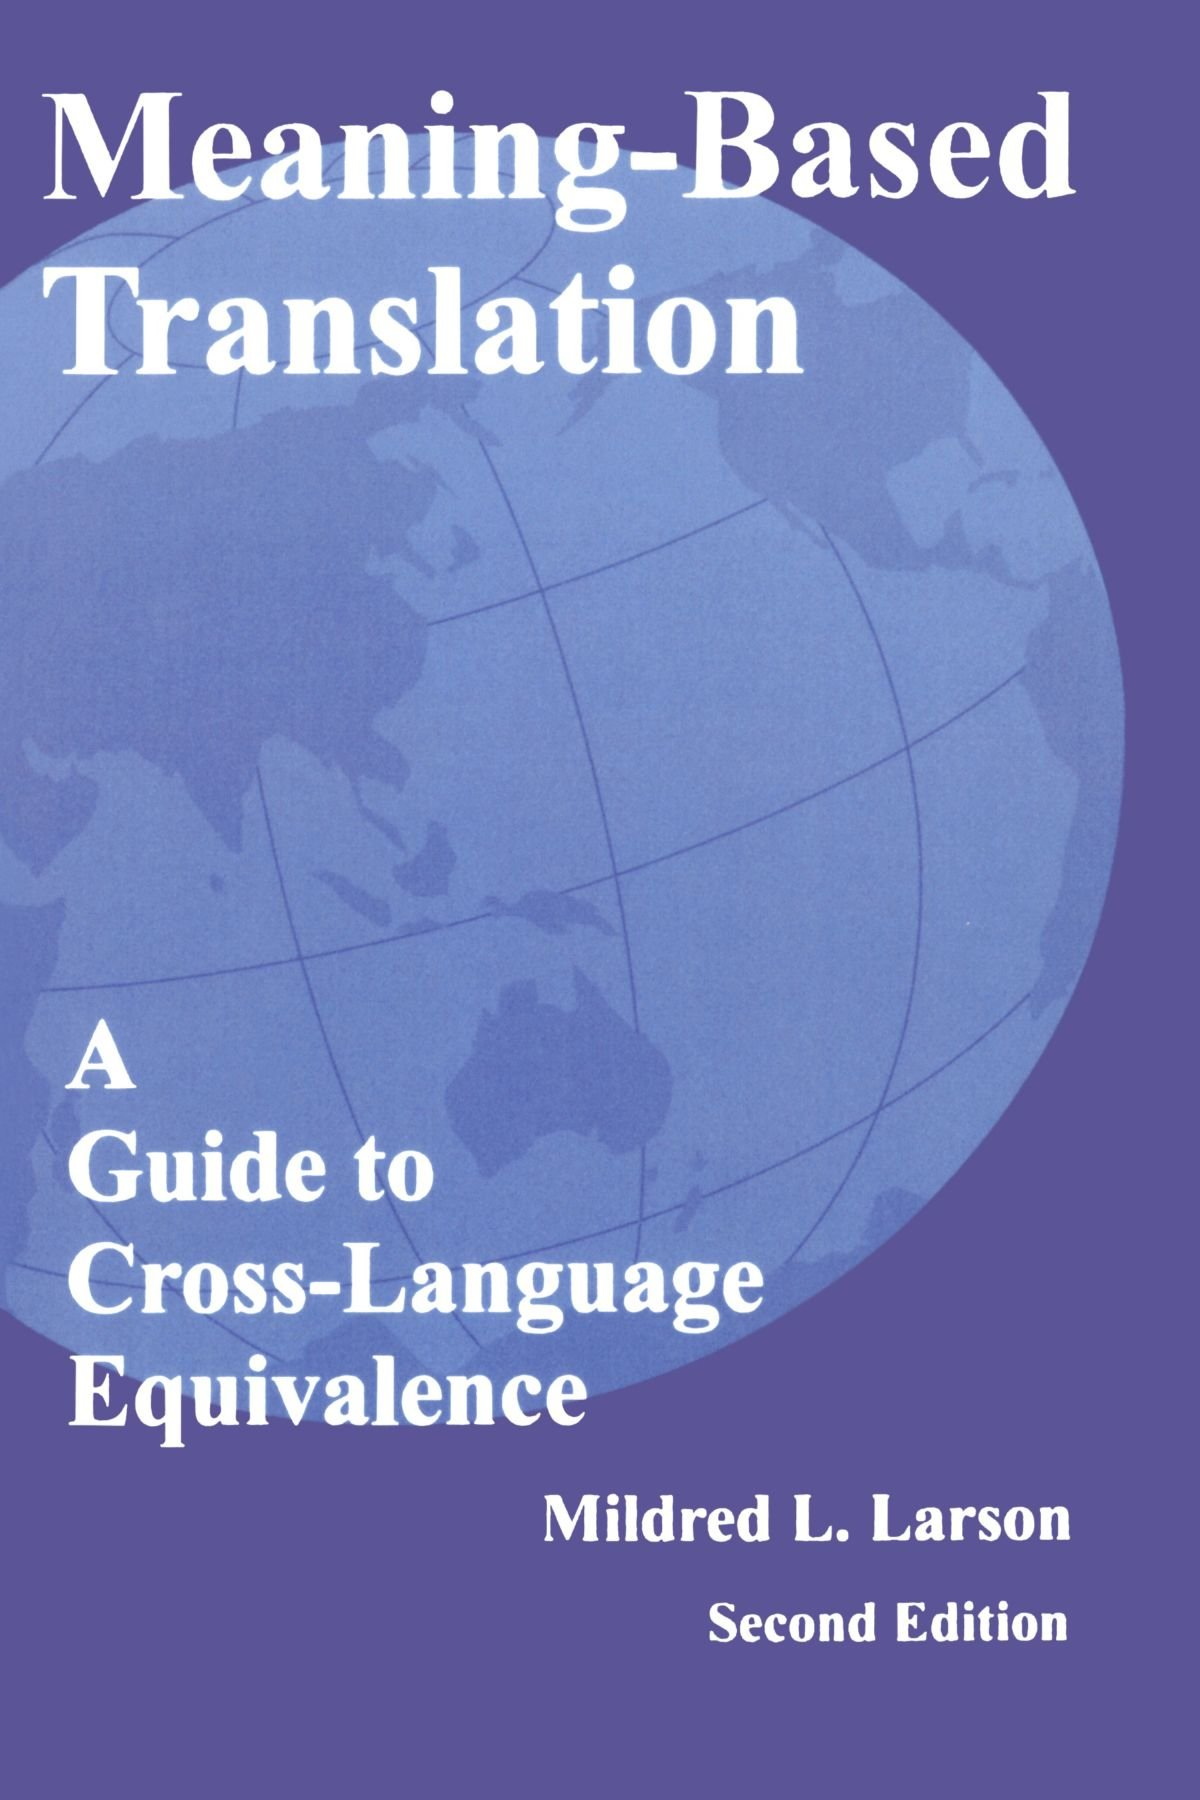 Meaning-Based Translation: A Guide to Cross-Language Equivalence, 2nd edition